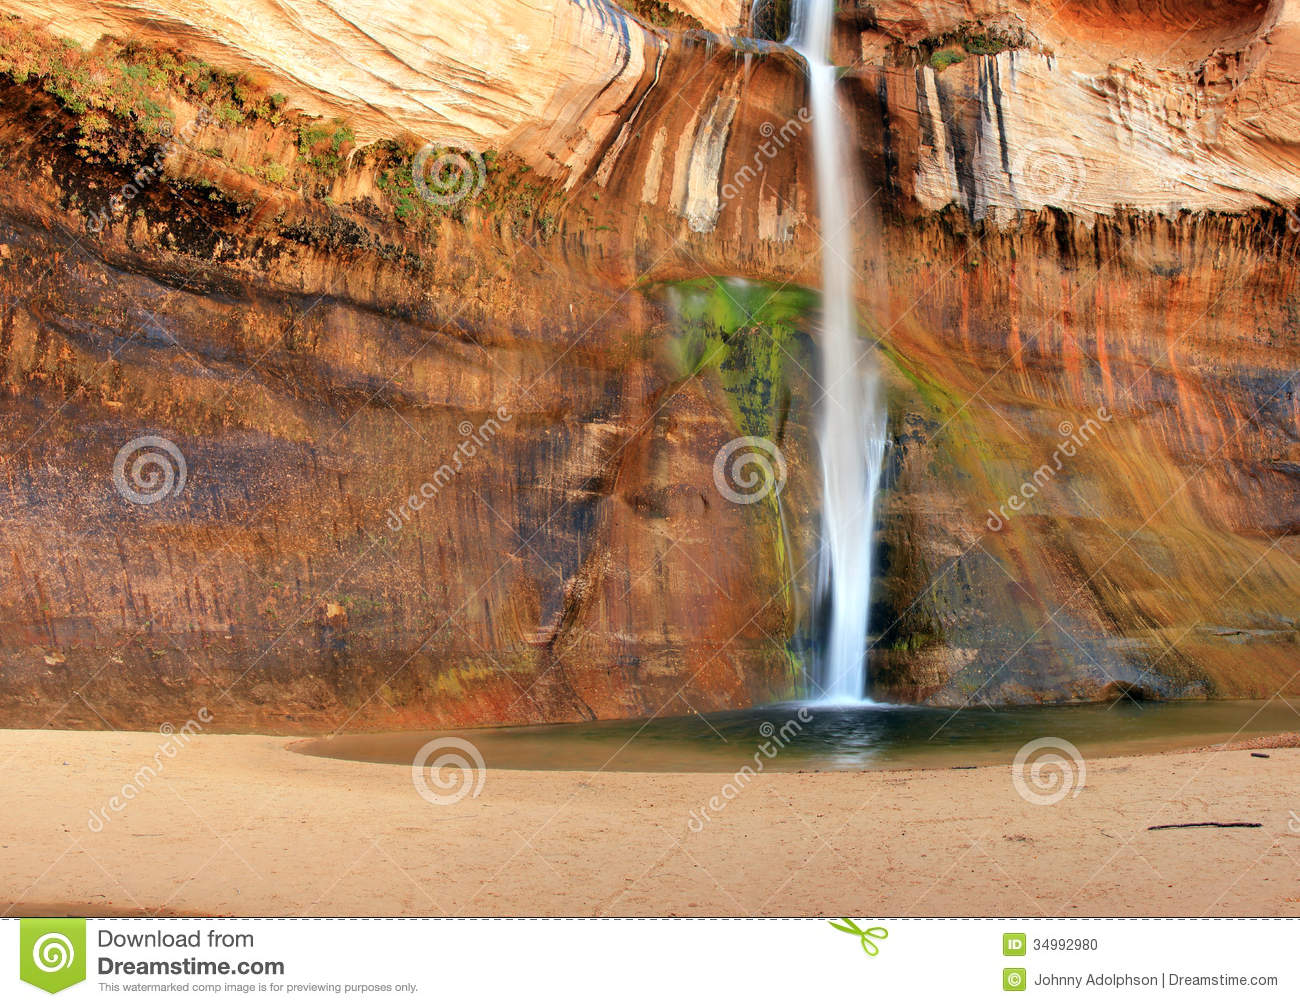 Calf Creek Falls clipart #11, Download drawings